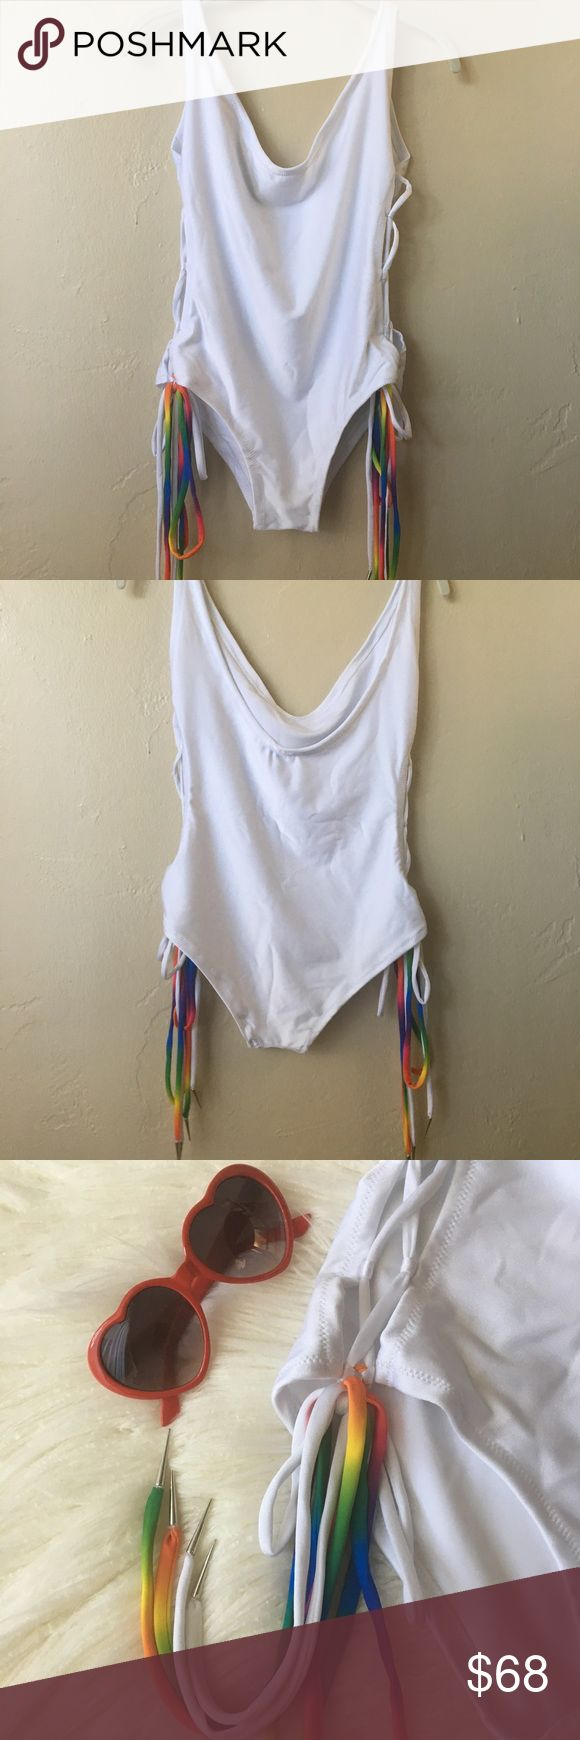 "🆕 Rainbow Tassel 🌈 One Piece Swimsuit NWT Rainbow Tassel Ice Queen Swimsuit from Stardust. One piece, size Medium. Open sides with white and rainbow colored tassels on each side. Tassels have metal tapered aglets on the ends 🌈 No built in support, but would easily fit up to a C-cup. Laid flat measures 14"" across chest, 19"" shoulder to hip, with 10"" leg openings. Scoop neck in front and back 🌈 Model picture shows lavender but this suit is bright white. Does not go sheer! Perfect for pool…"